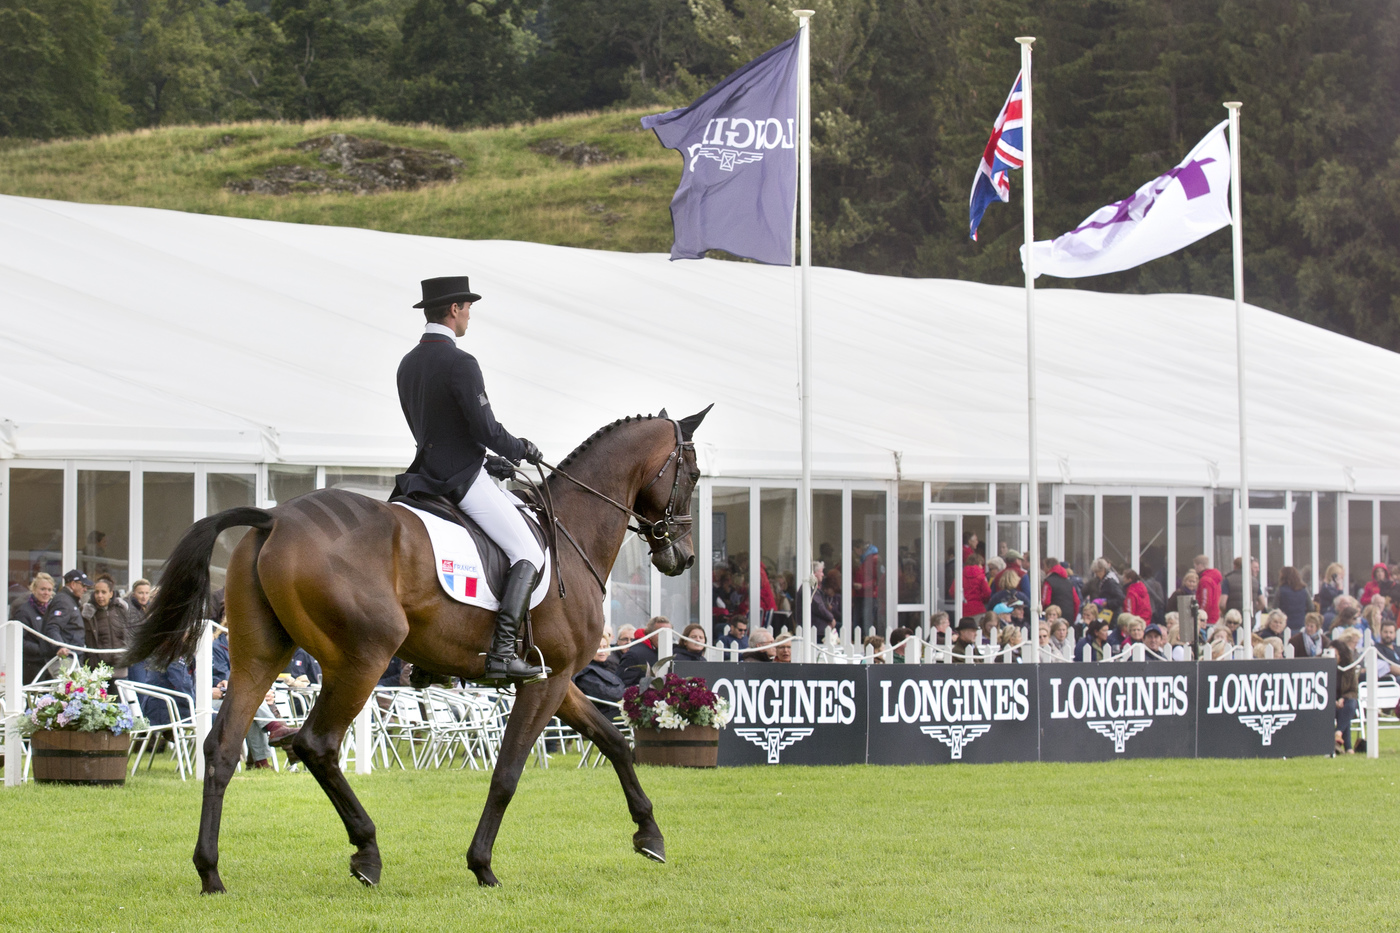 Longines Equestrian Event: Longines to be Title Partner of the Longines FEI World Breeding Dressage Championships for Young Horses 1